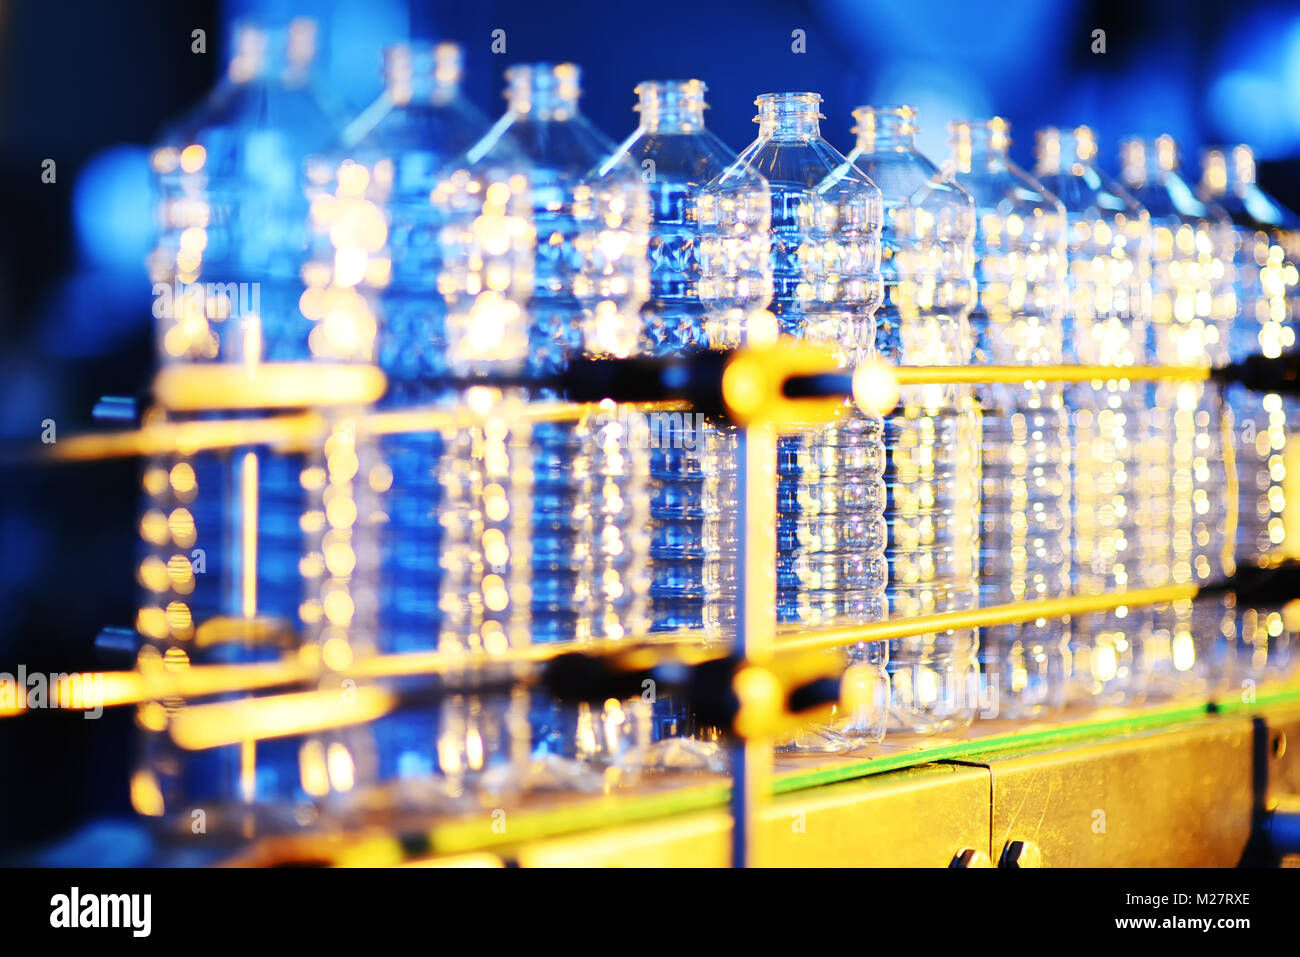 conveyor line for the production of plastic bottles close-up - Stock Image